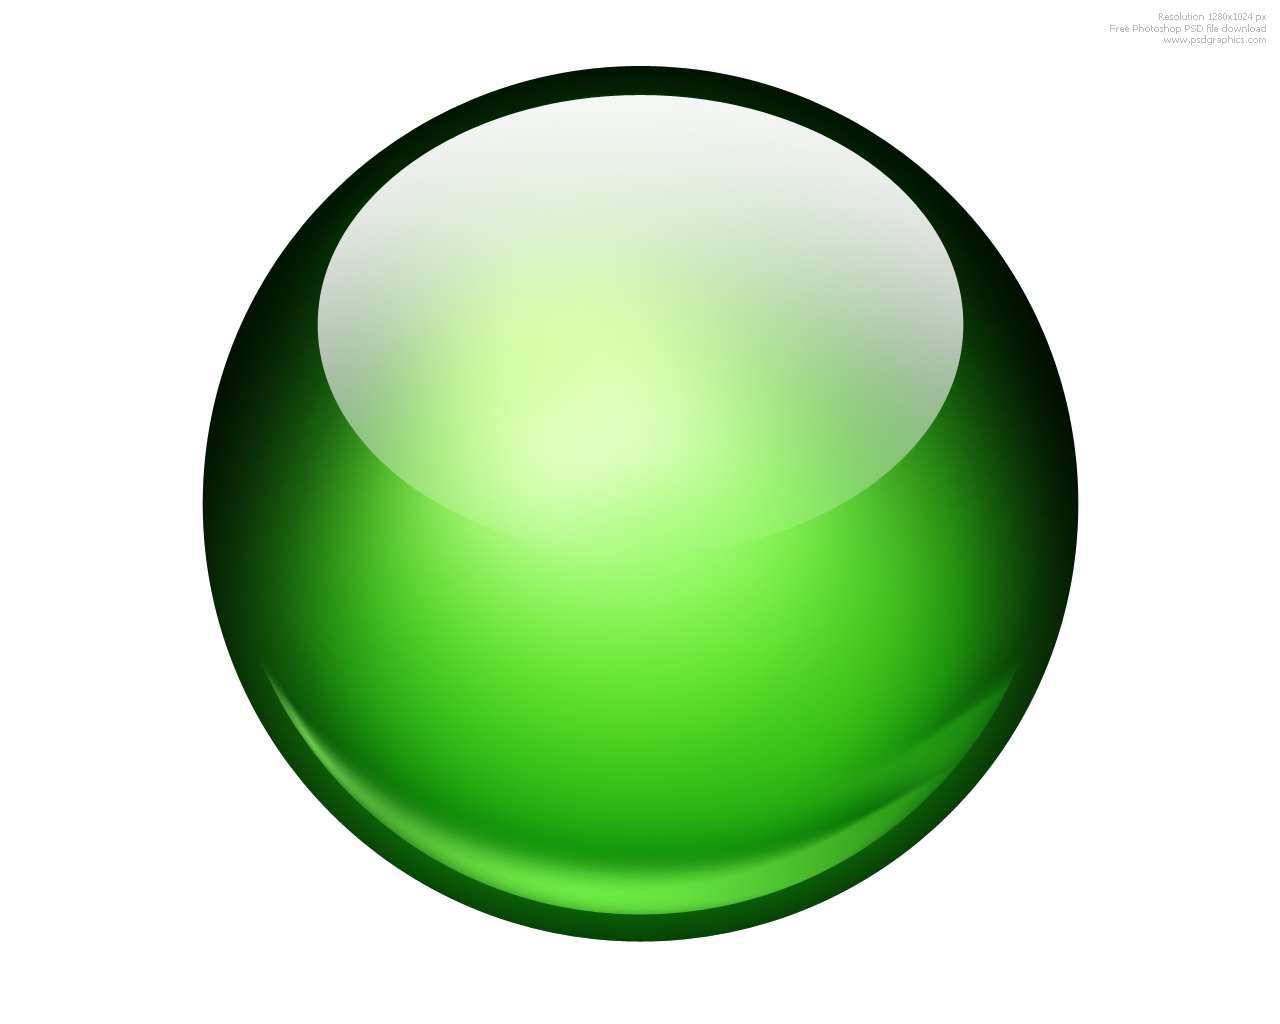 8 Glossy Green Home Icon Images